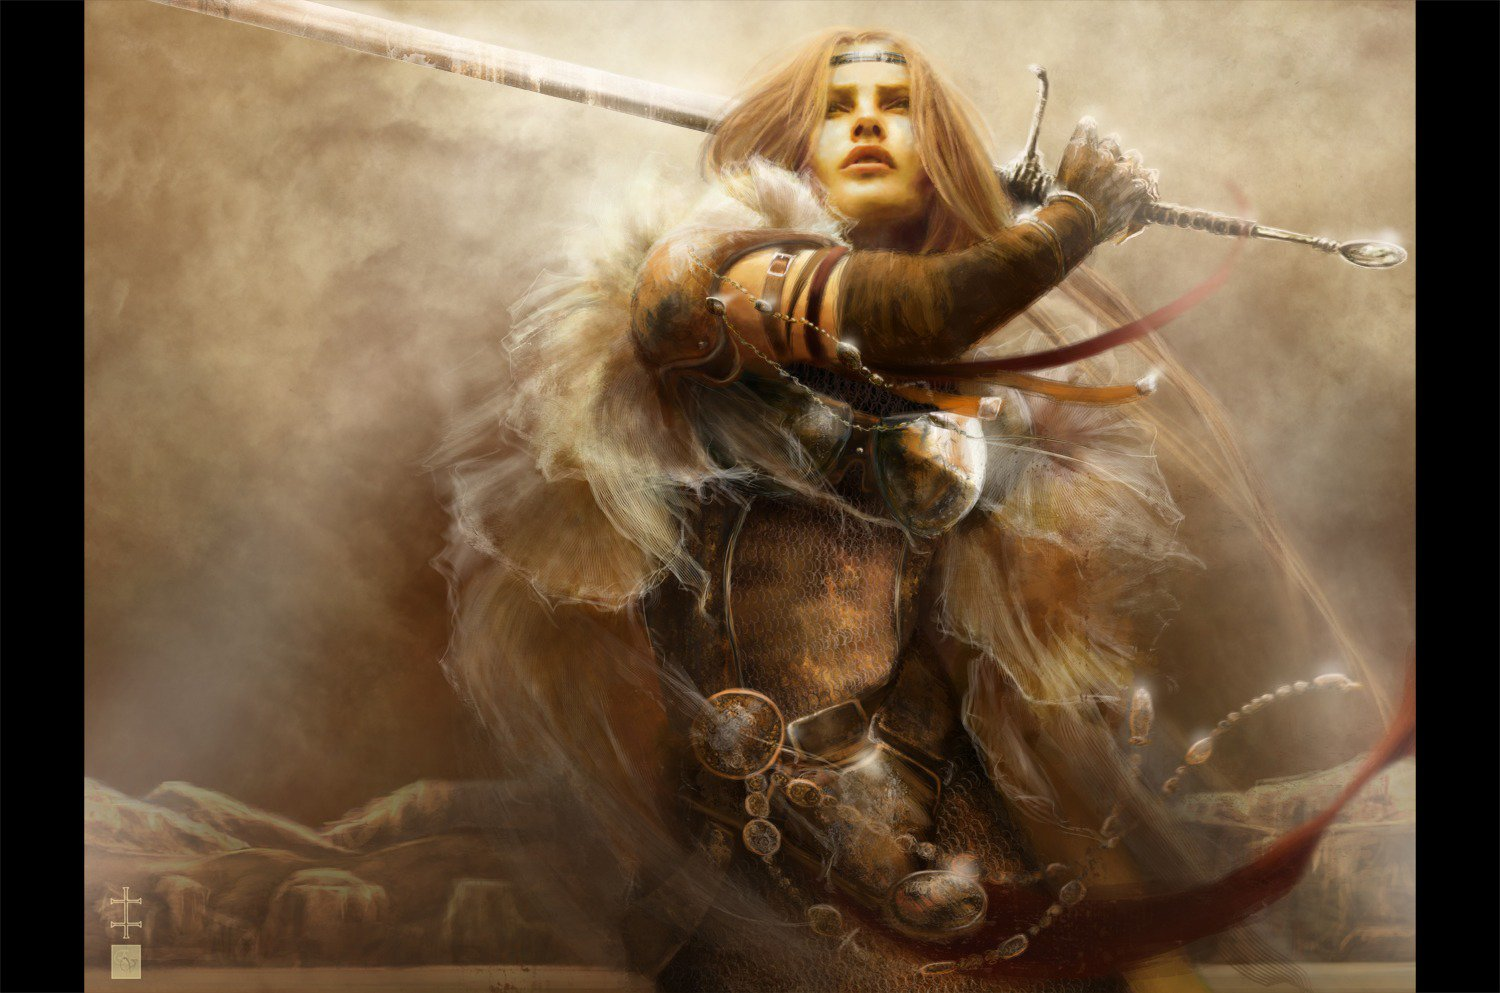 Women Warrior Backgrounds on Wallpapers Vista